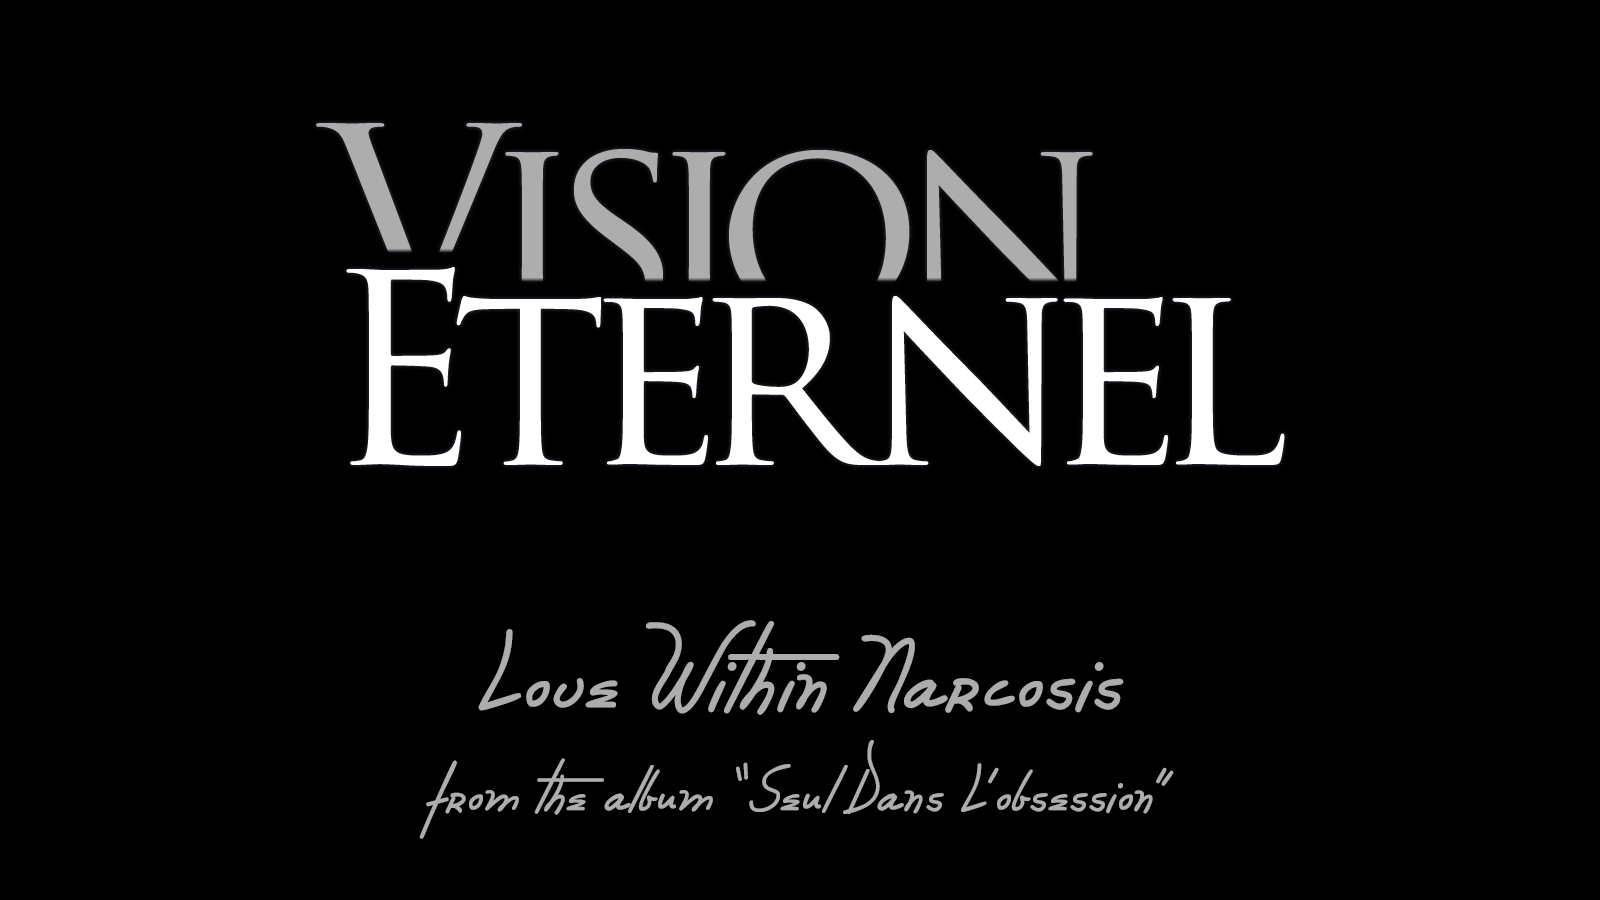 Vision Éternel Love Within Narcosis Video Is Remastered